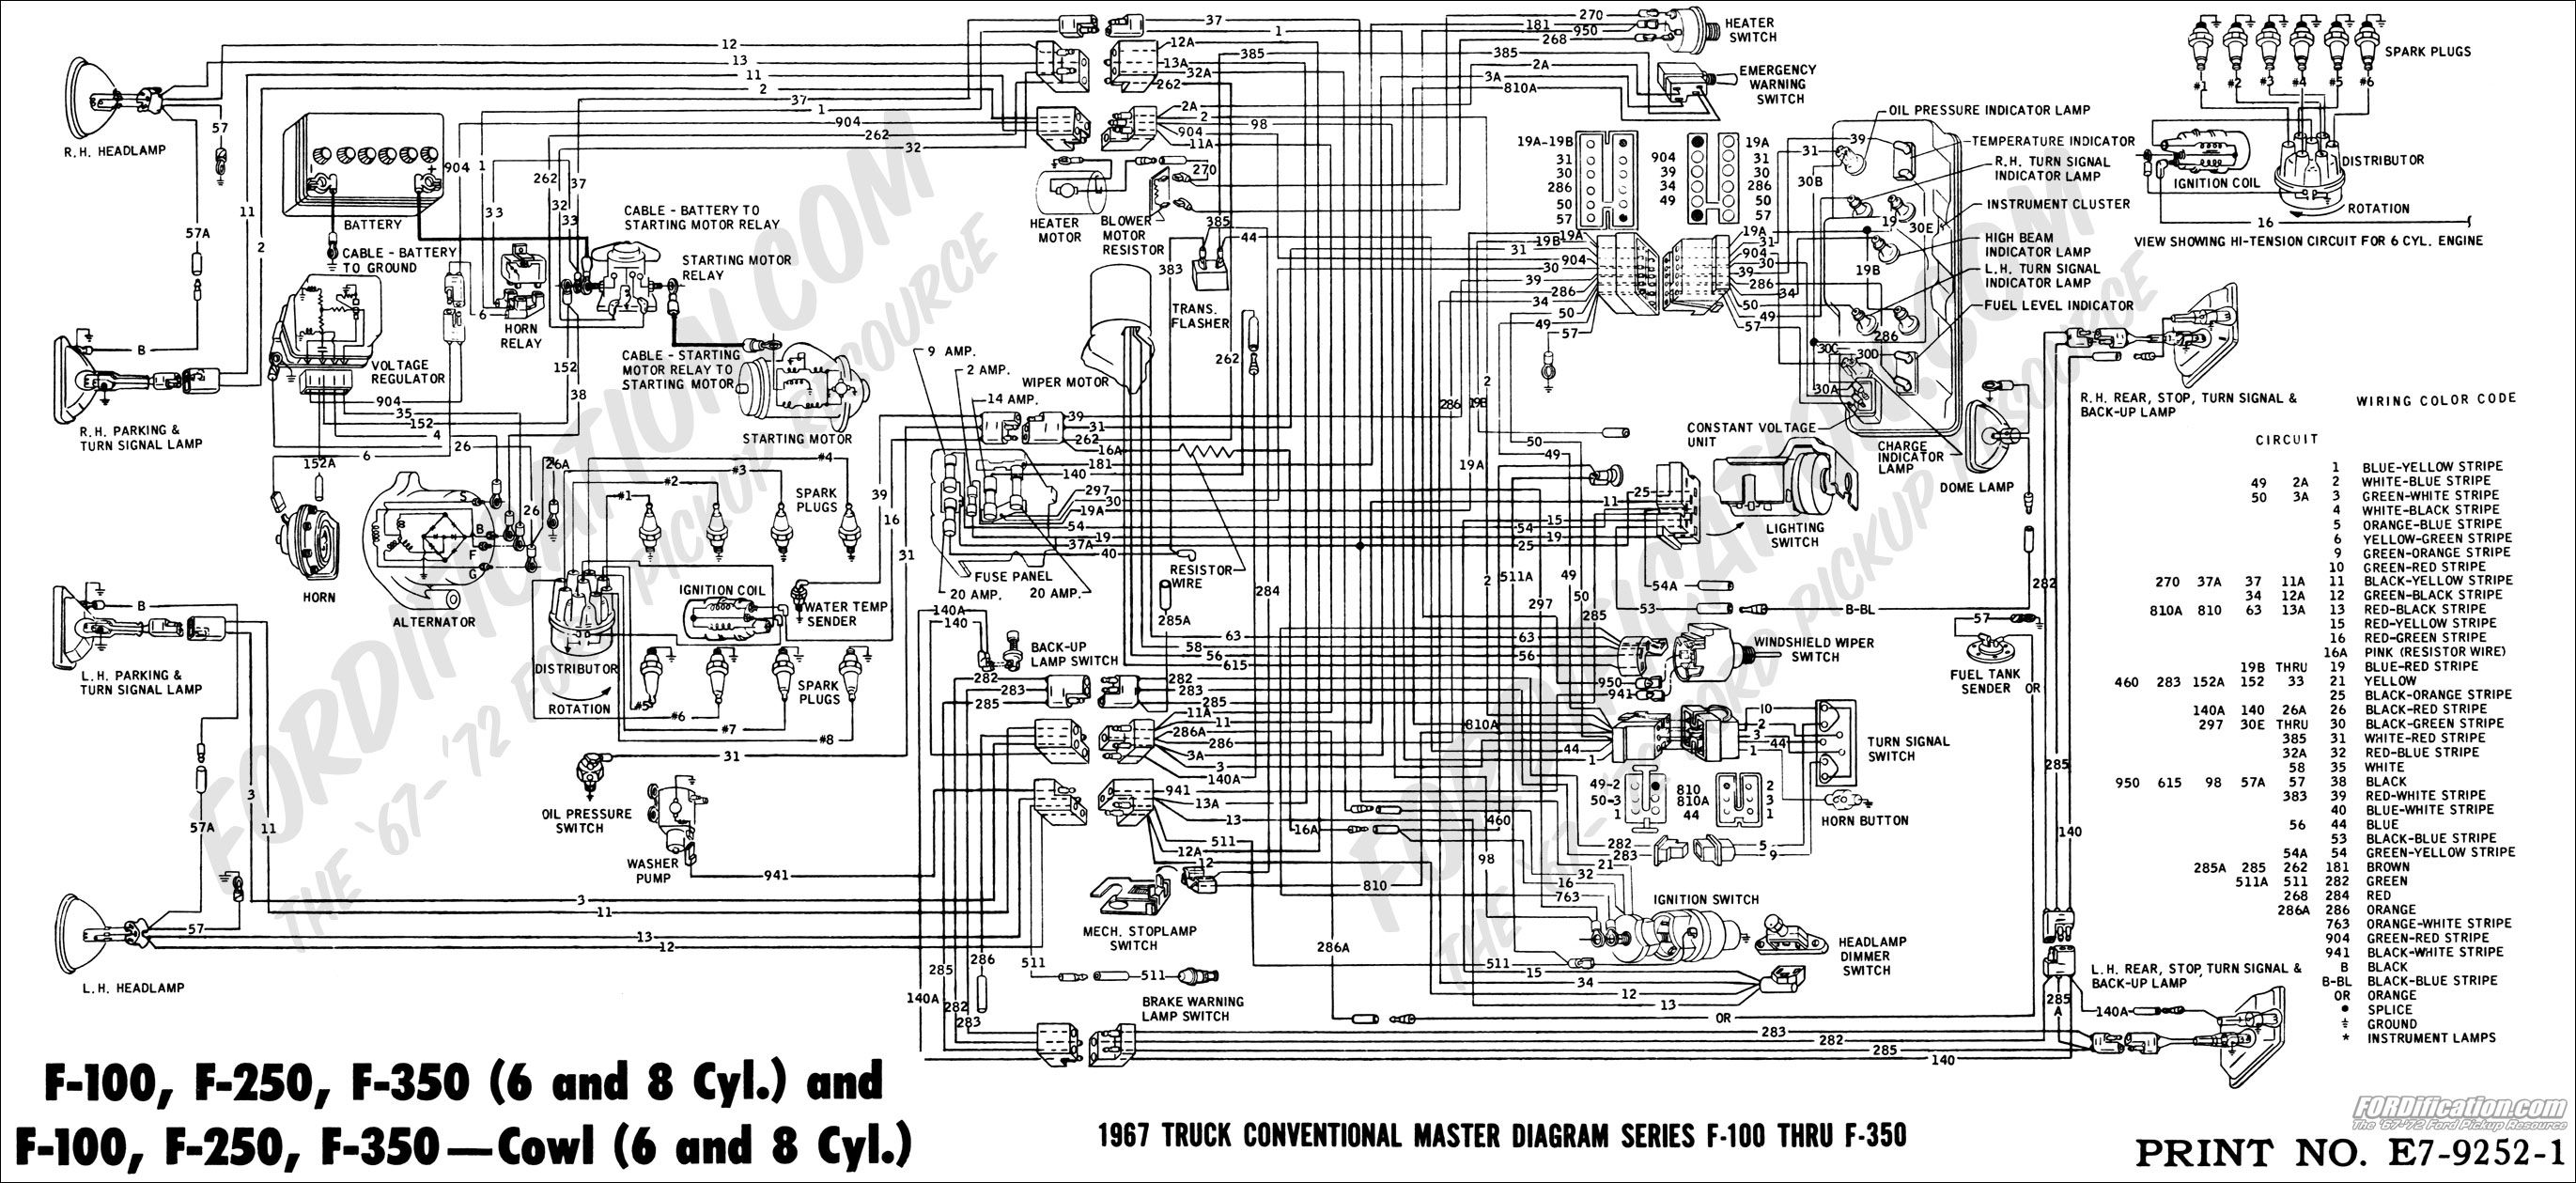 8e608320d8e6c71ff5bbdb2efdd7ada1 ford truck technical drawings and schematics section h wiring 1964 ford f100 wiring diagram at crackthecode.co